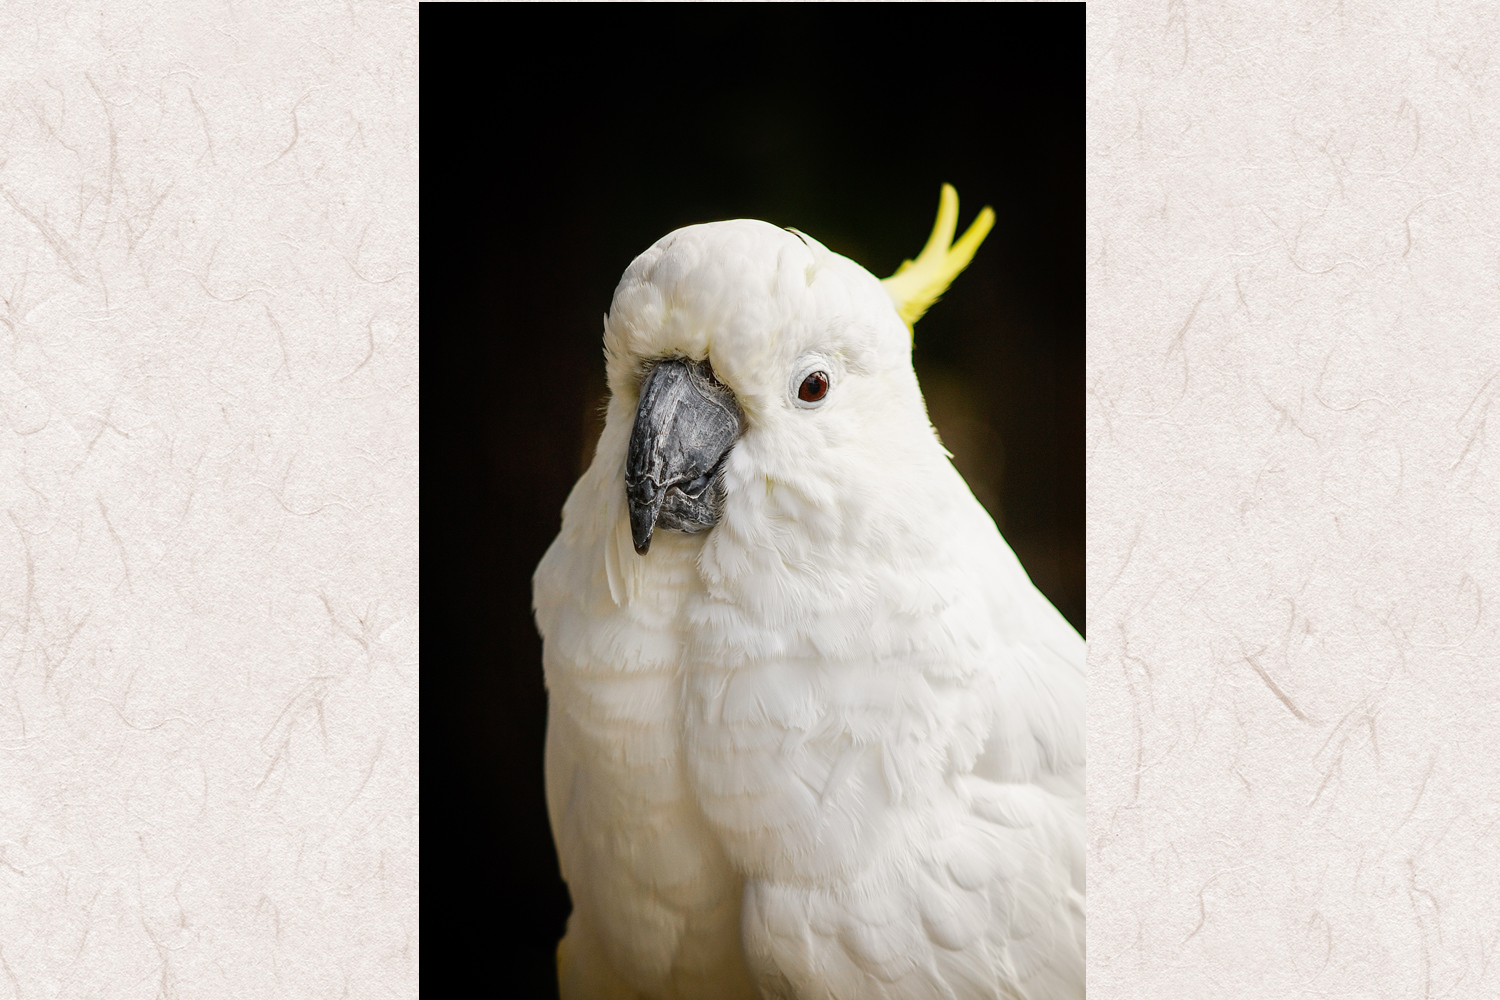 Parrot photo 1 example image 1